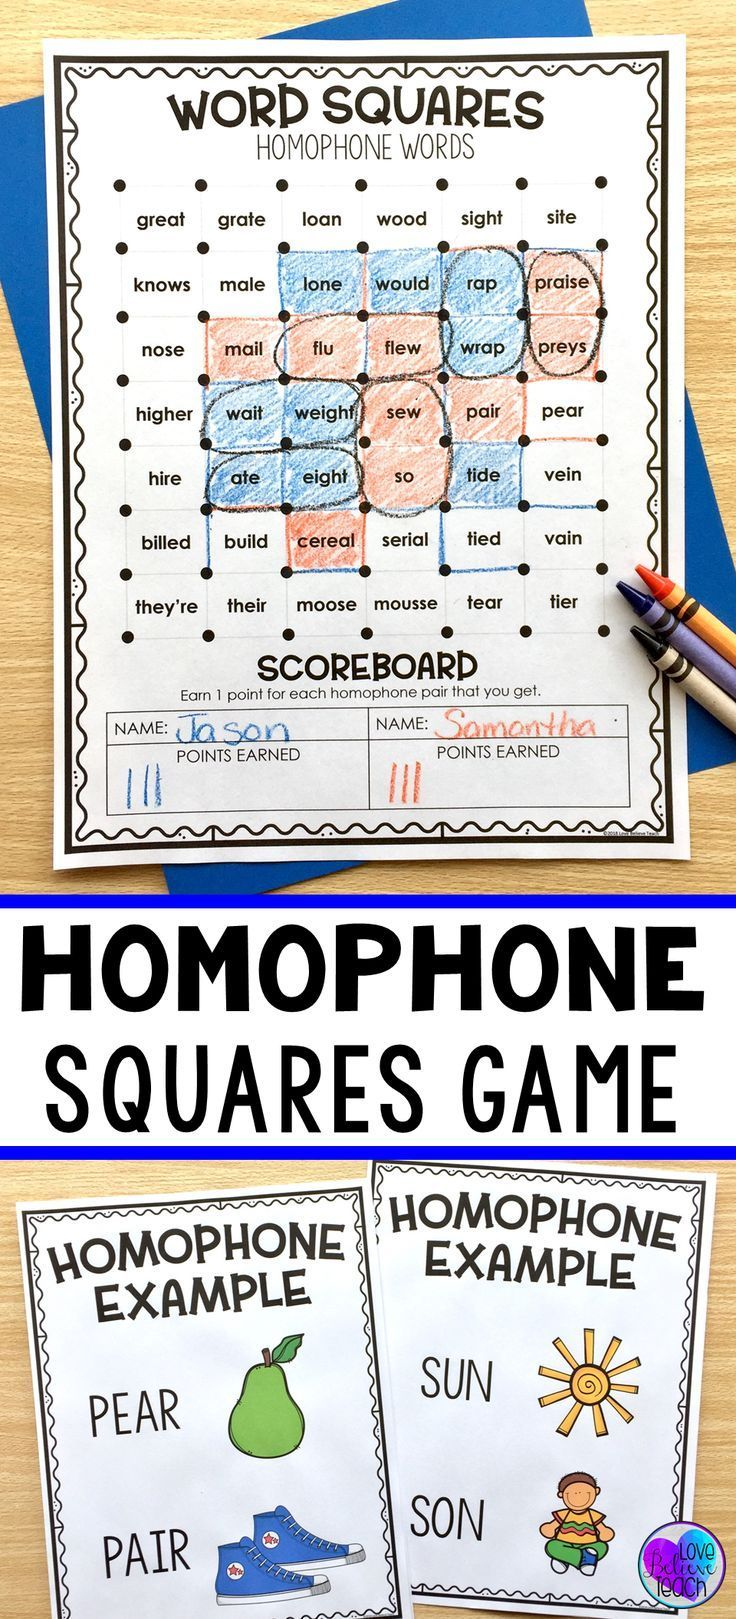 This Homophones Activity Is A Fun Way For Your Students To Practice Homophone Pairs Included Is A Homophone Definiti Homophones Words Word Squares Homophones [ 1619 x 736 Pixel ]